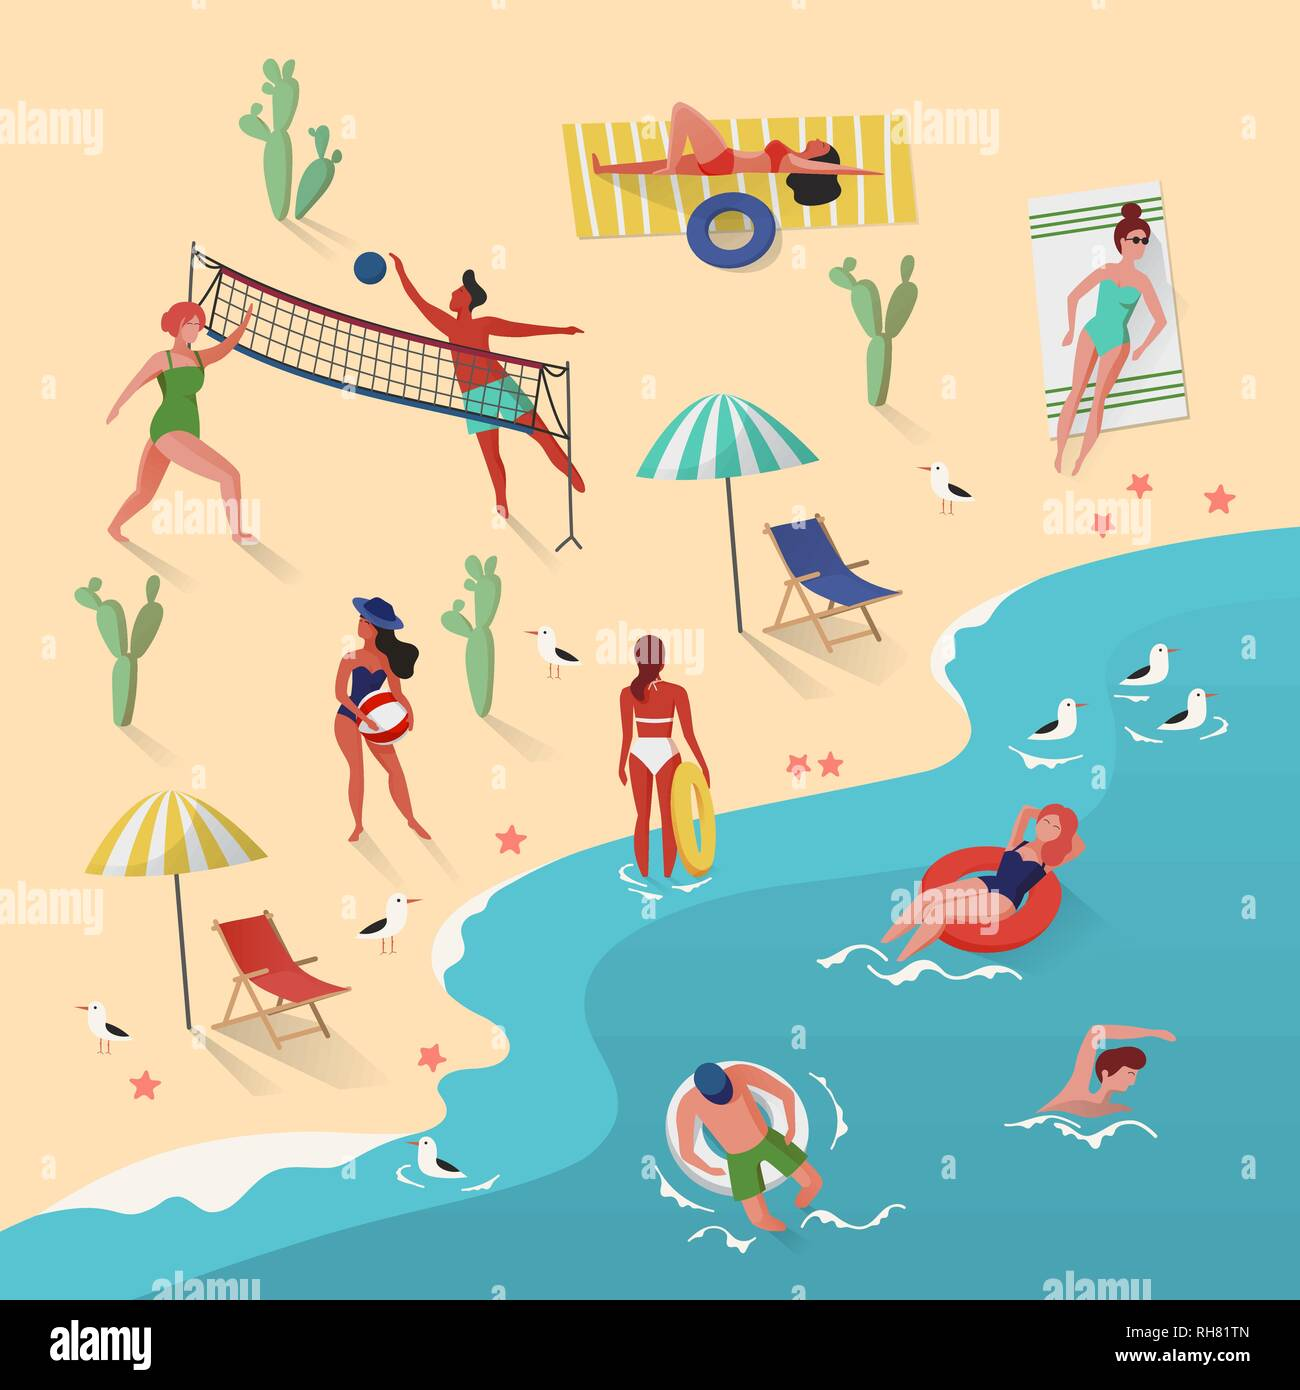 People swimming and playing - Stock Vector